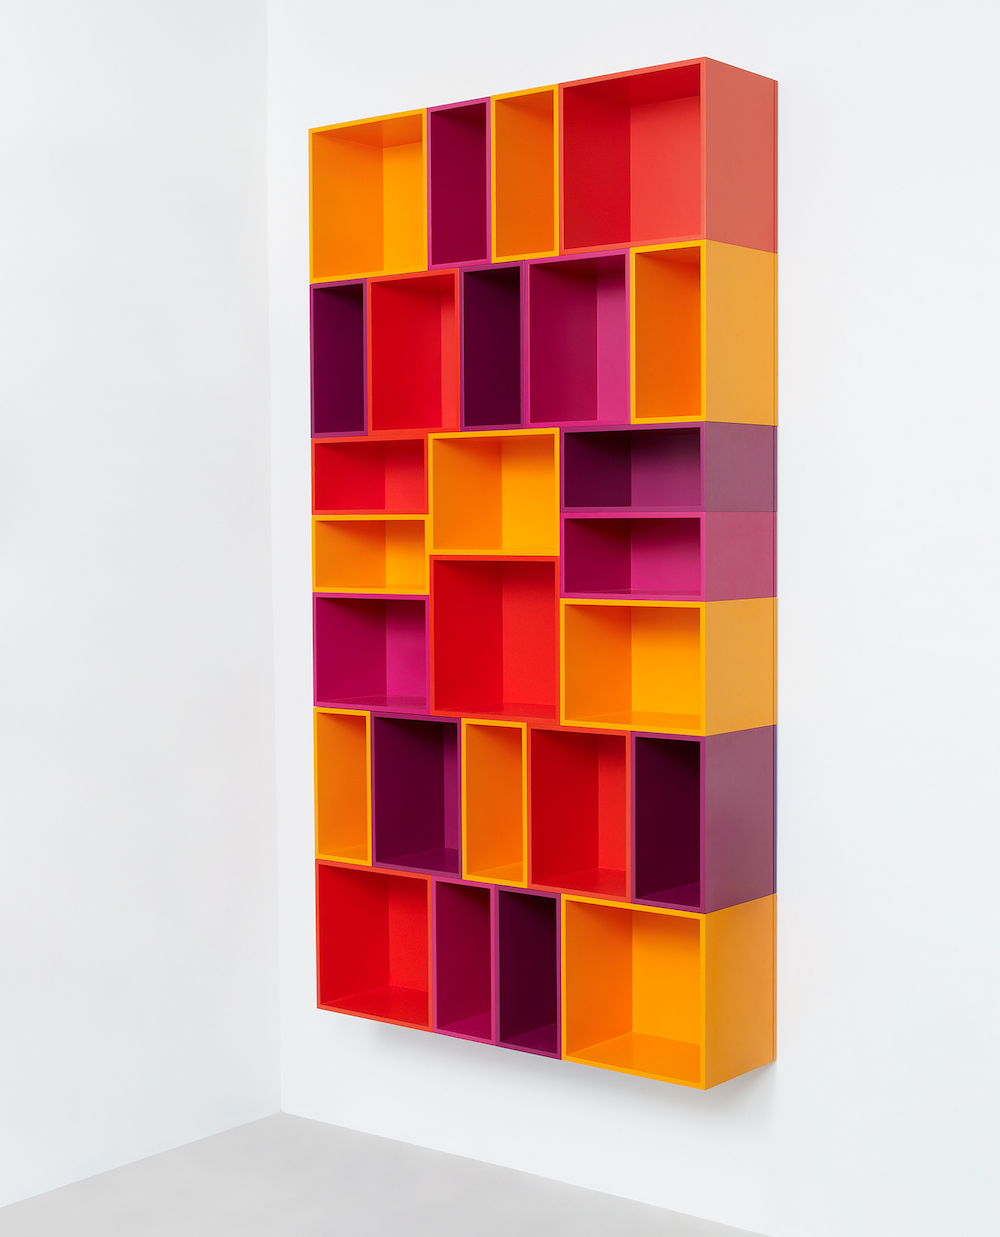 awesome-design-ideas-Cubit-modular-shelving-system-6